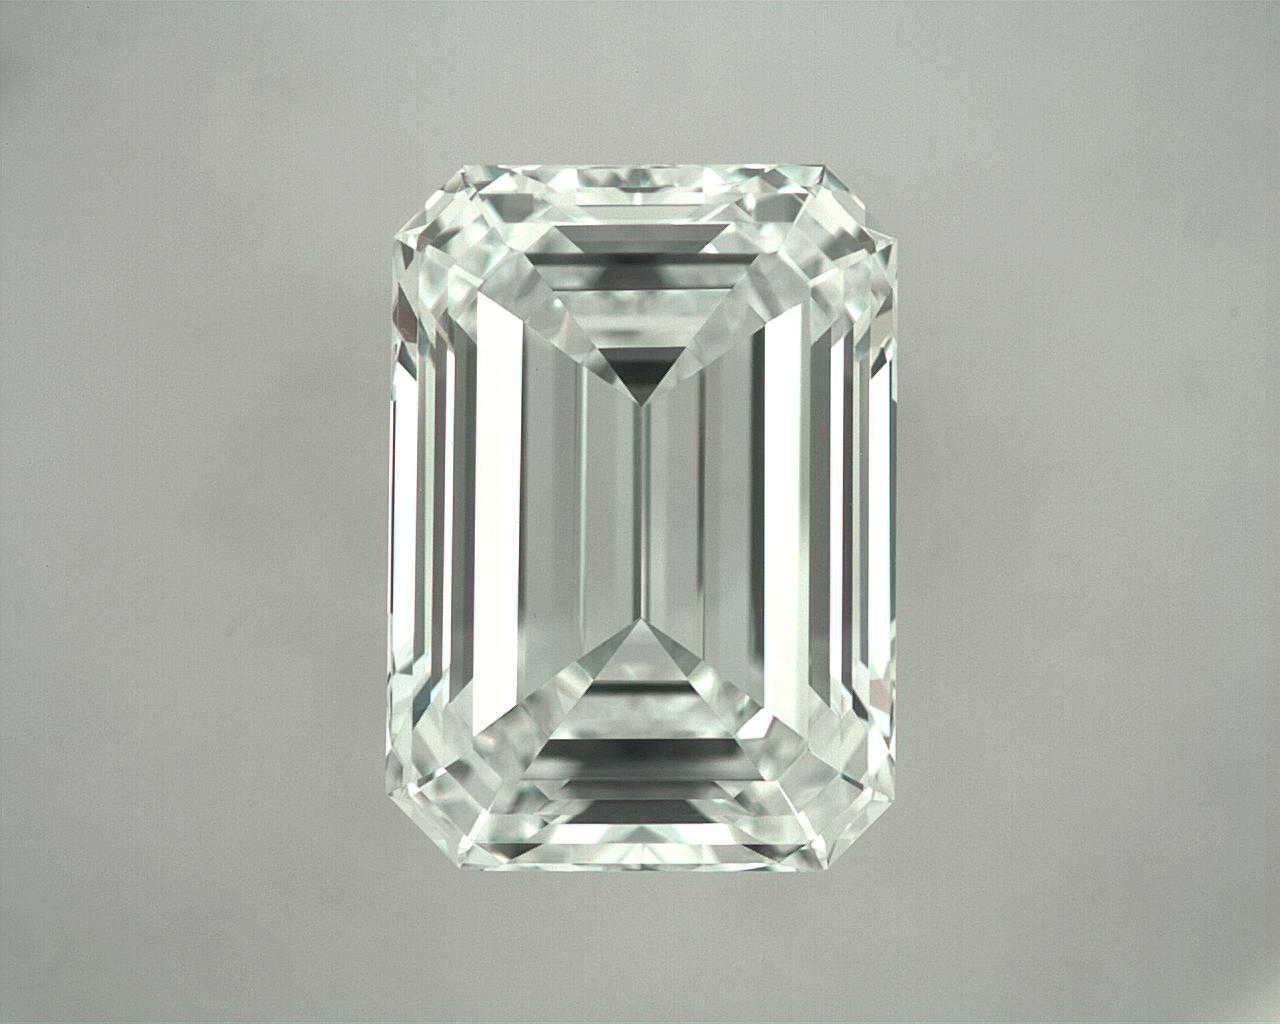 1.02ct D IF (Internally Flawless) Emerald Cut GIA